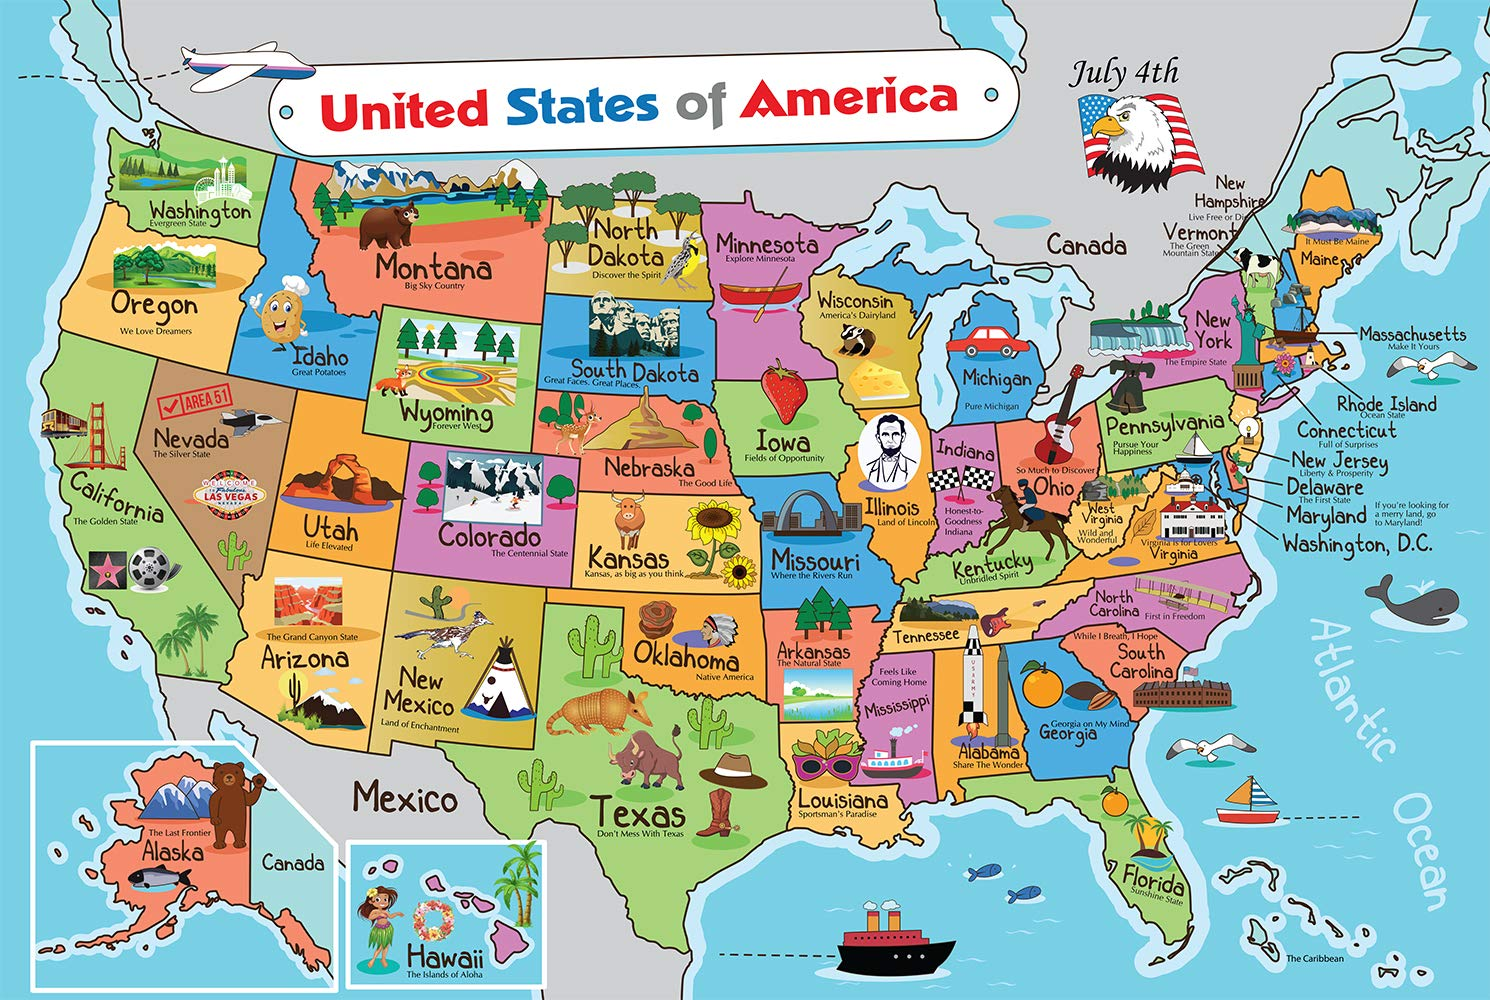 Amazon.com: Kids United States Map | Wall Poster 13"|1490|1000|?|False|81d0d430cb14ec0028c9715c3ab62d10|False|UNLIKELY|0.3384176194667816